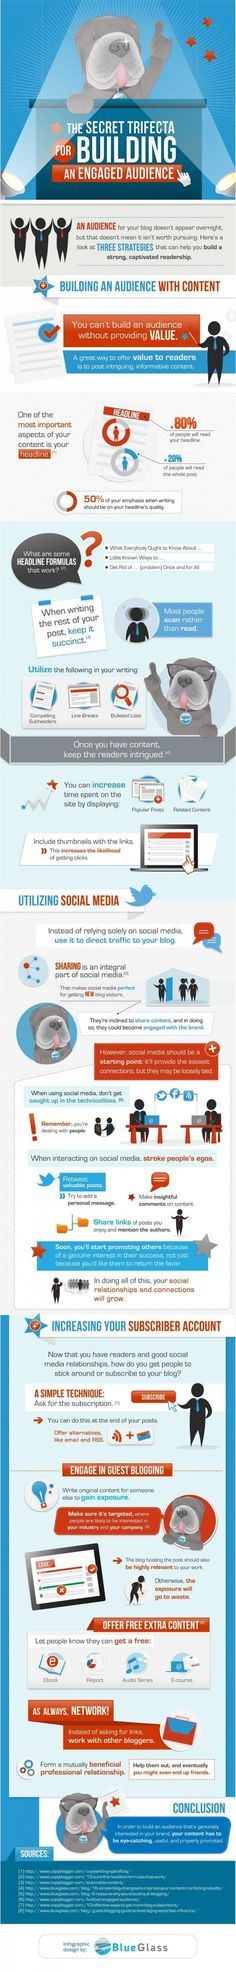 The secret for building an engaged audience. #infografia #infographic